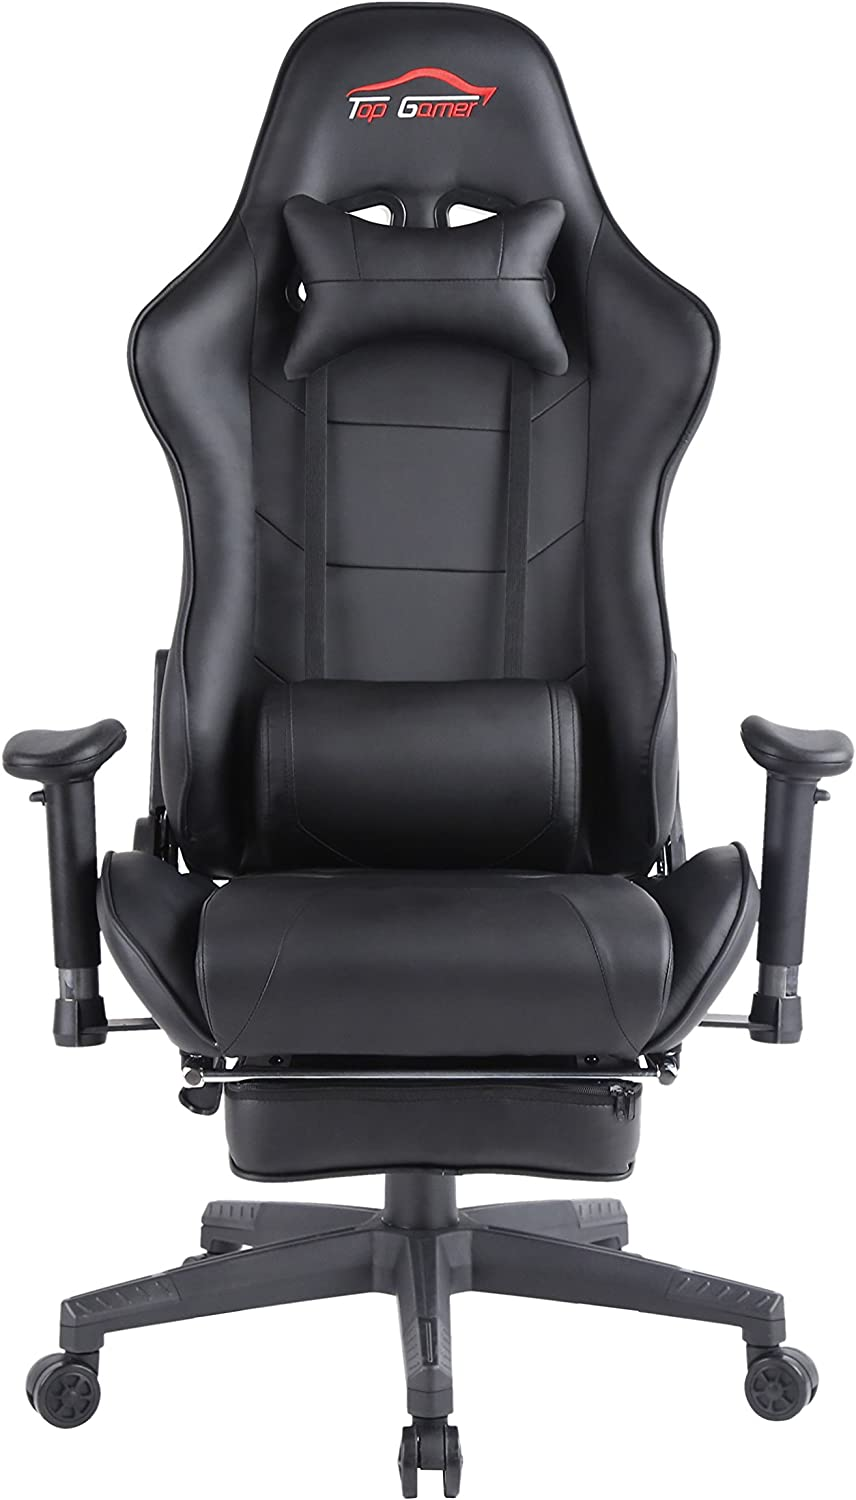 Top Gamer Ergonomic Gaming Chair High Back Swivel Computer Office Chair with Footrest Adjusting Headrest and Lumbar Support Racing Chair Black-0009